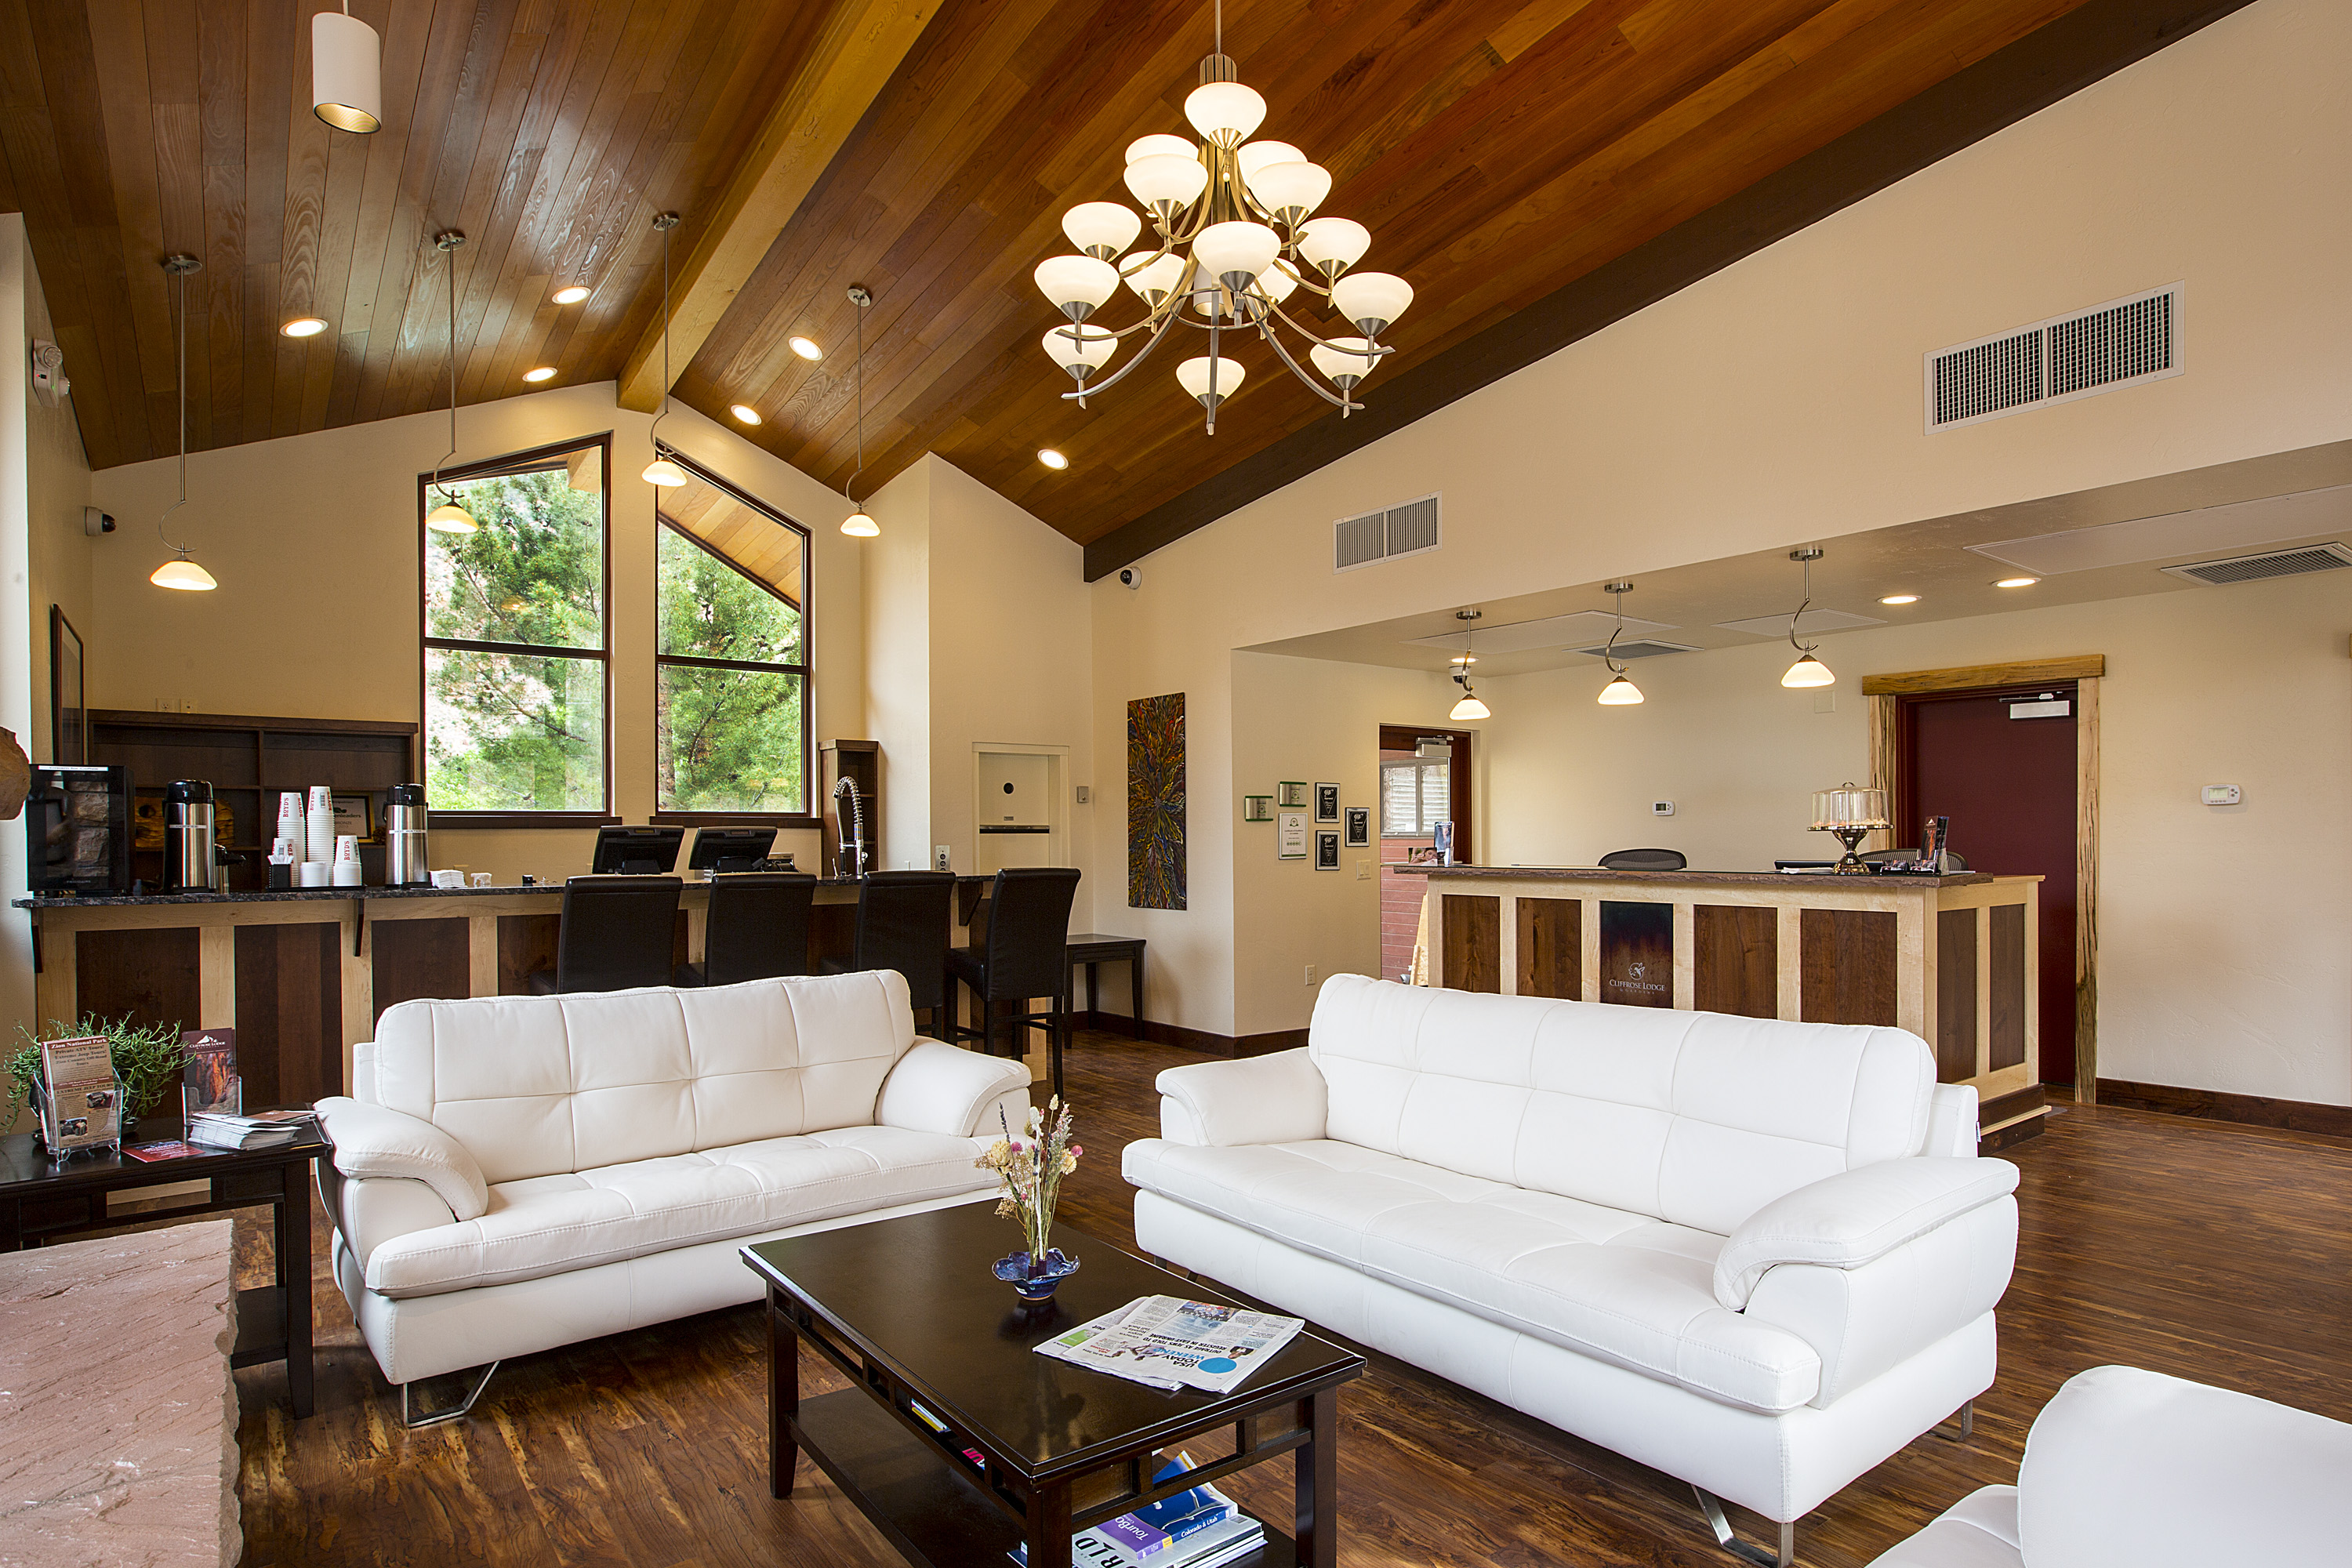 Cliffrose Lodge U0026 Gardens Is Nestled In The Heart Of Zion Canyon Bordering  Zion National Park Along The Virgin River. A Truly Serene Riverside  Location That ...